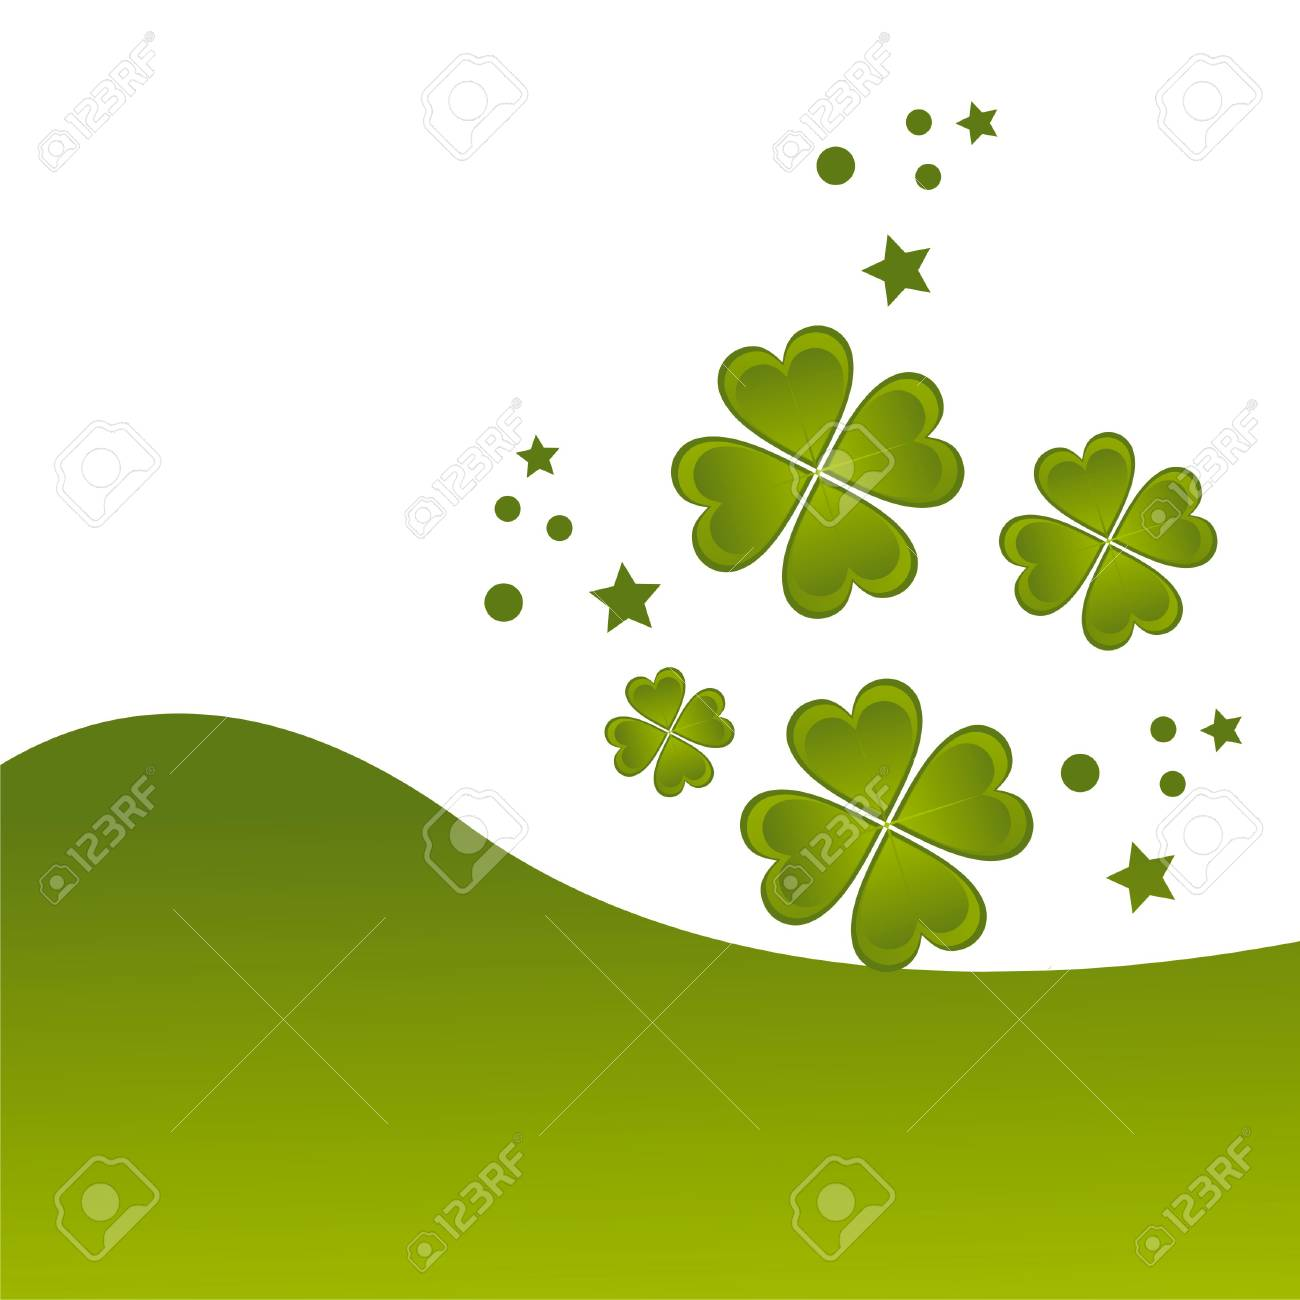 glossy st. patrick's day background Stock Vector - 8854979